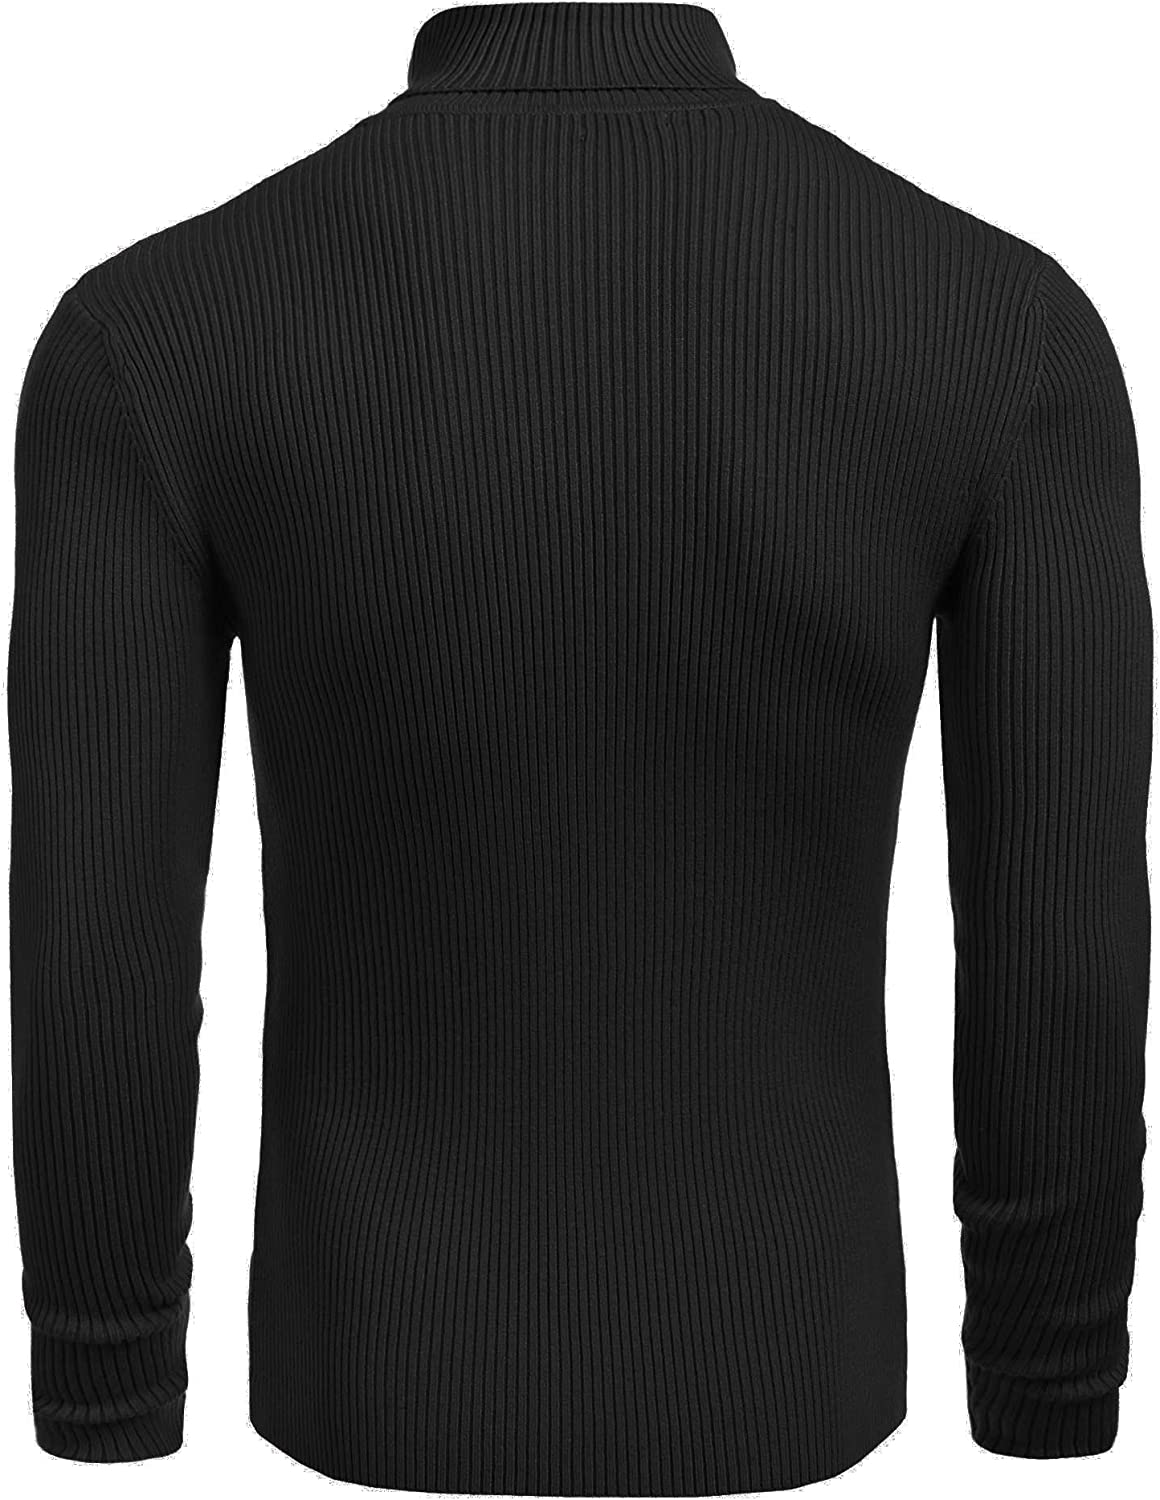 Yayu Mens Long Sleeve Crew Neck Slim Fit Knit Pullover Sweater